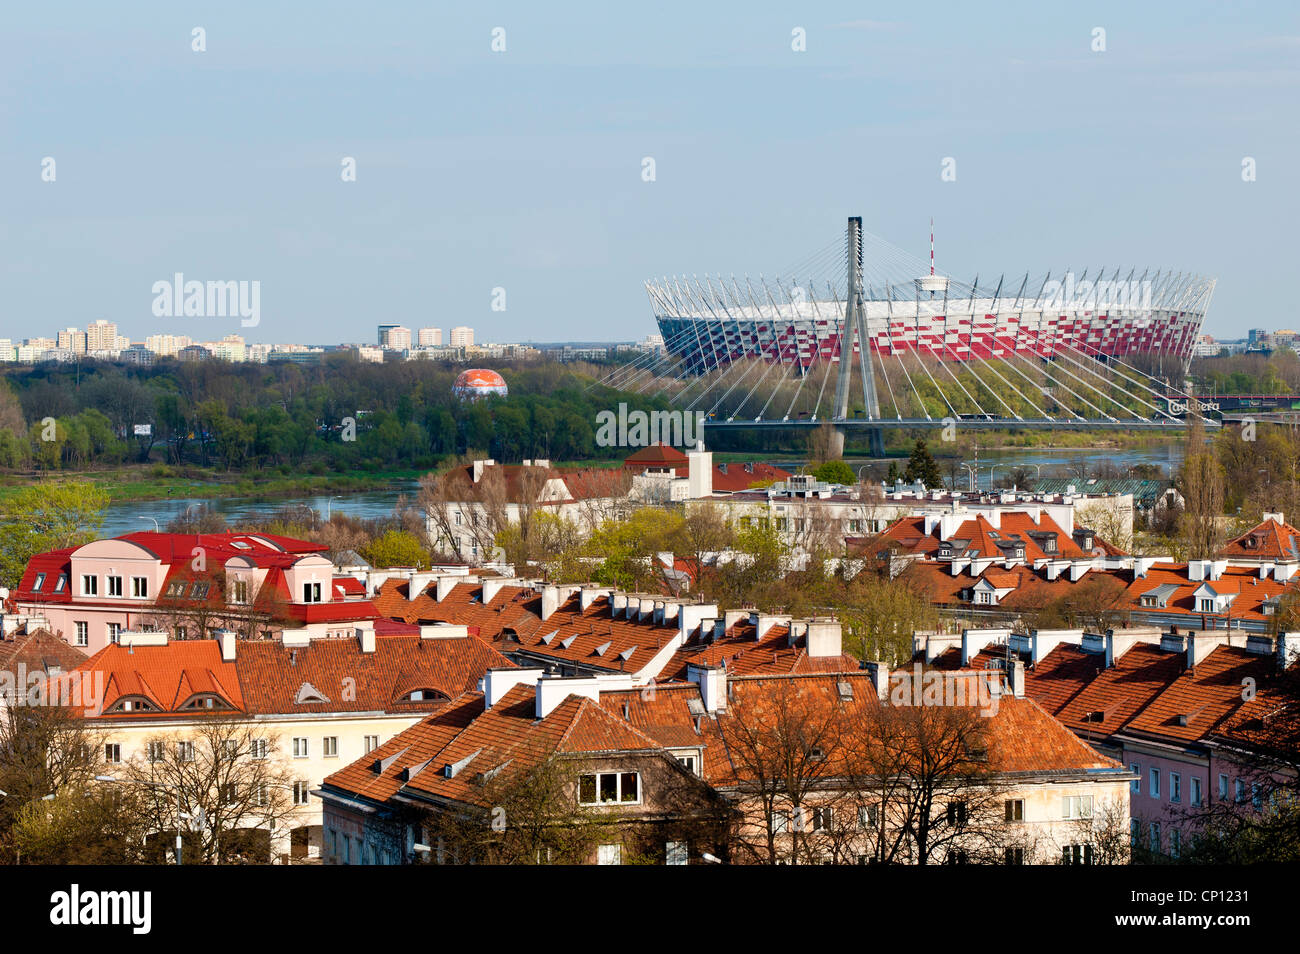 View of National Stadium and rooftops, Warsaw, Poland - Stock Image